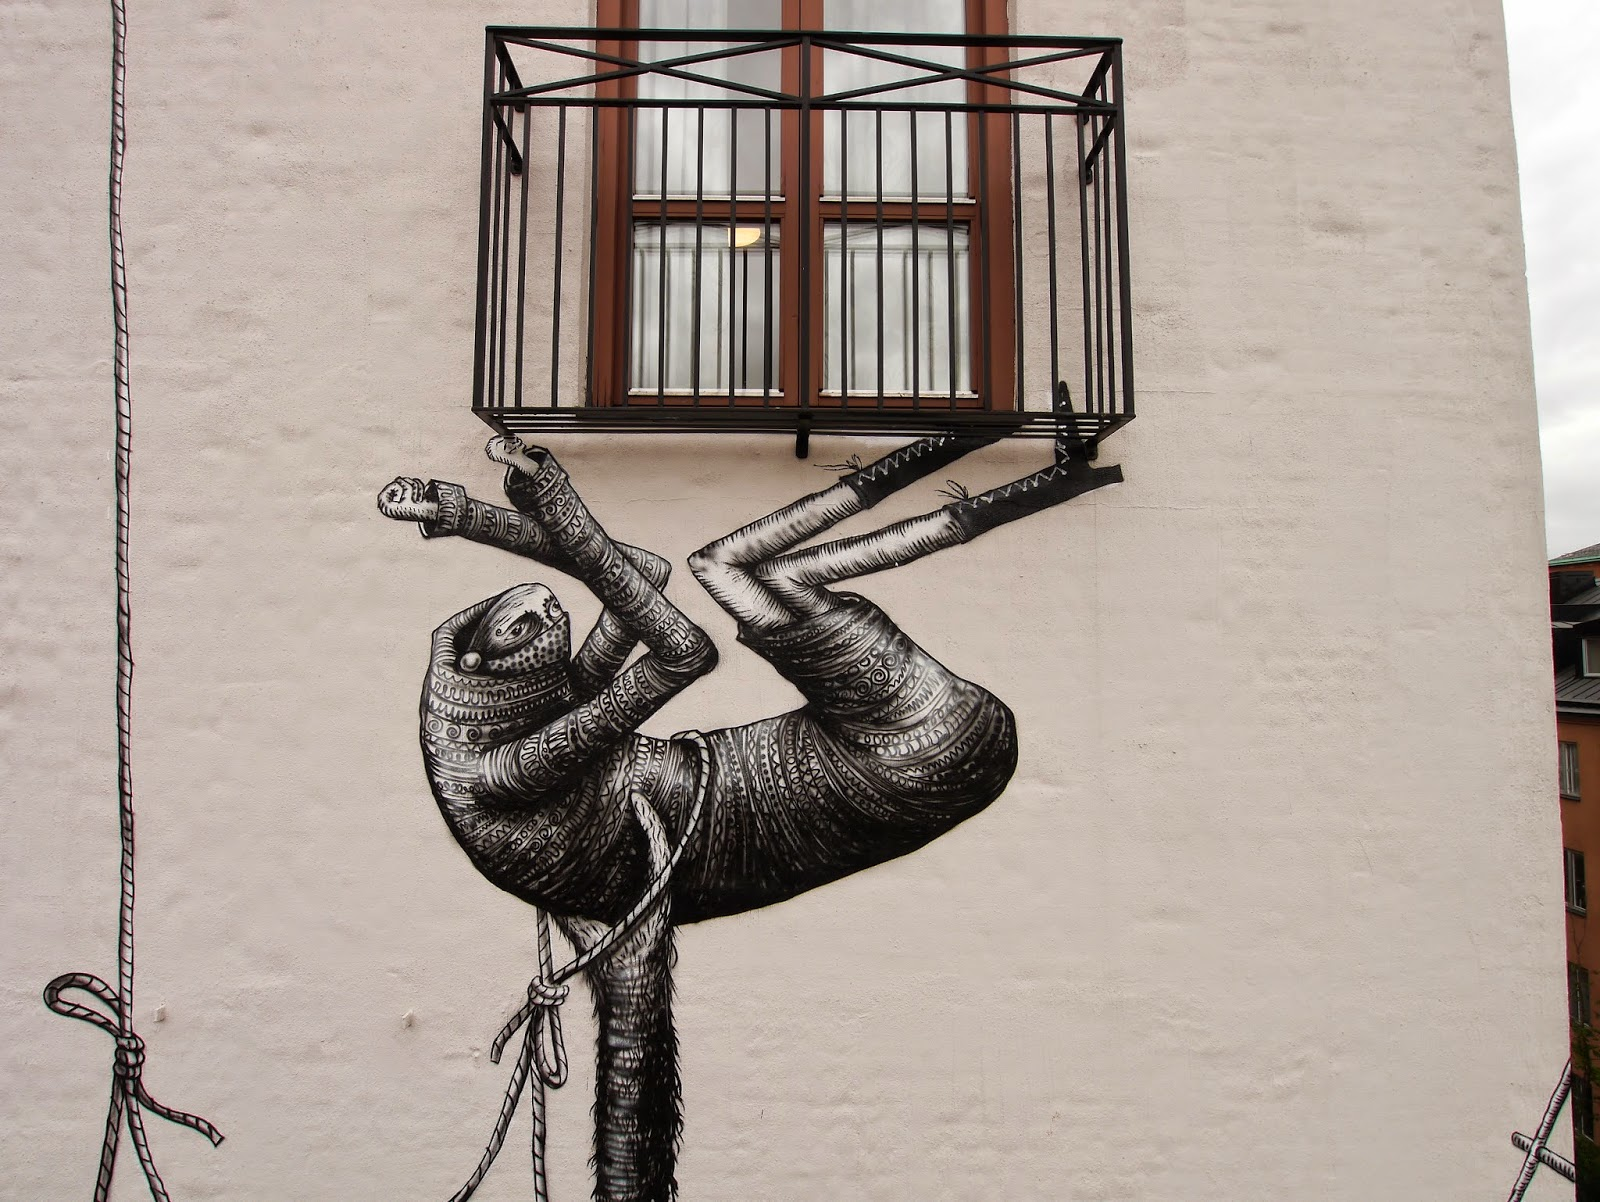 phlegm-new-mural-for-artscape-festival-2014-03